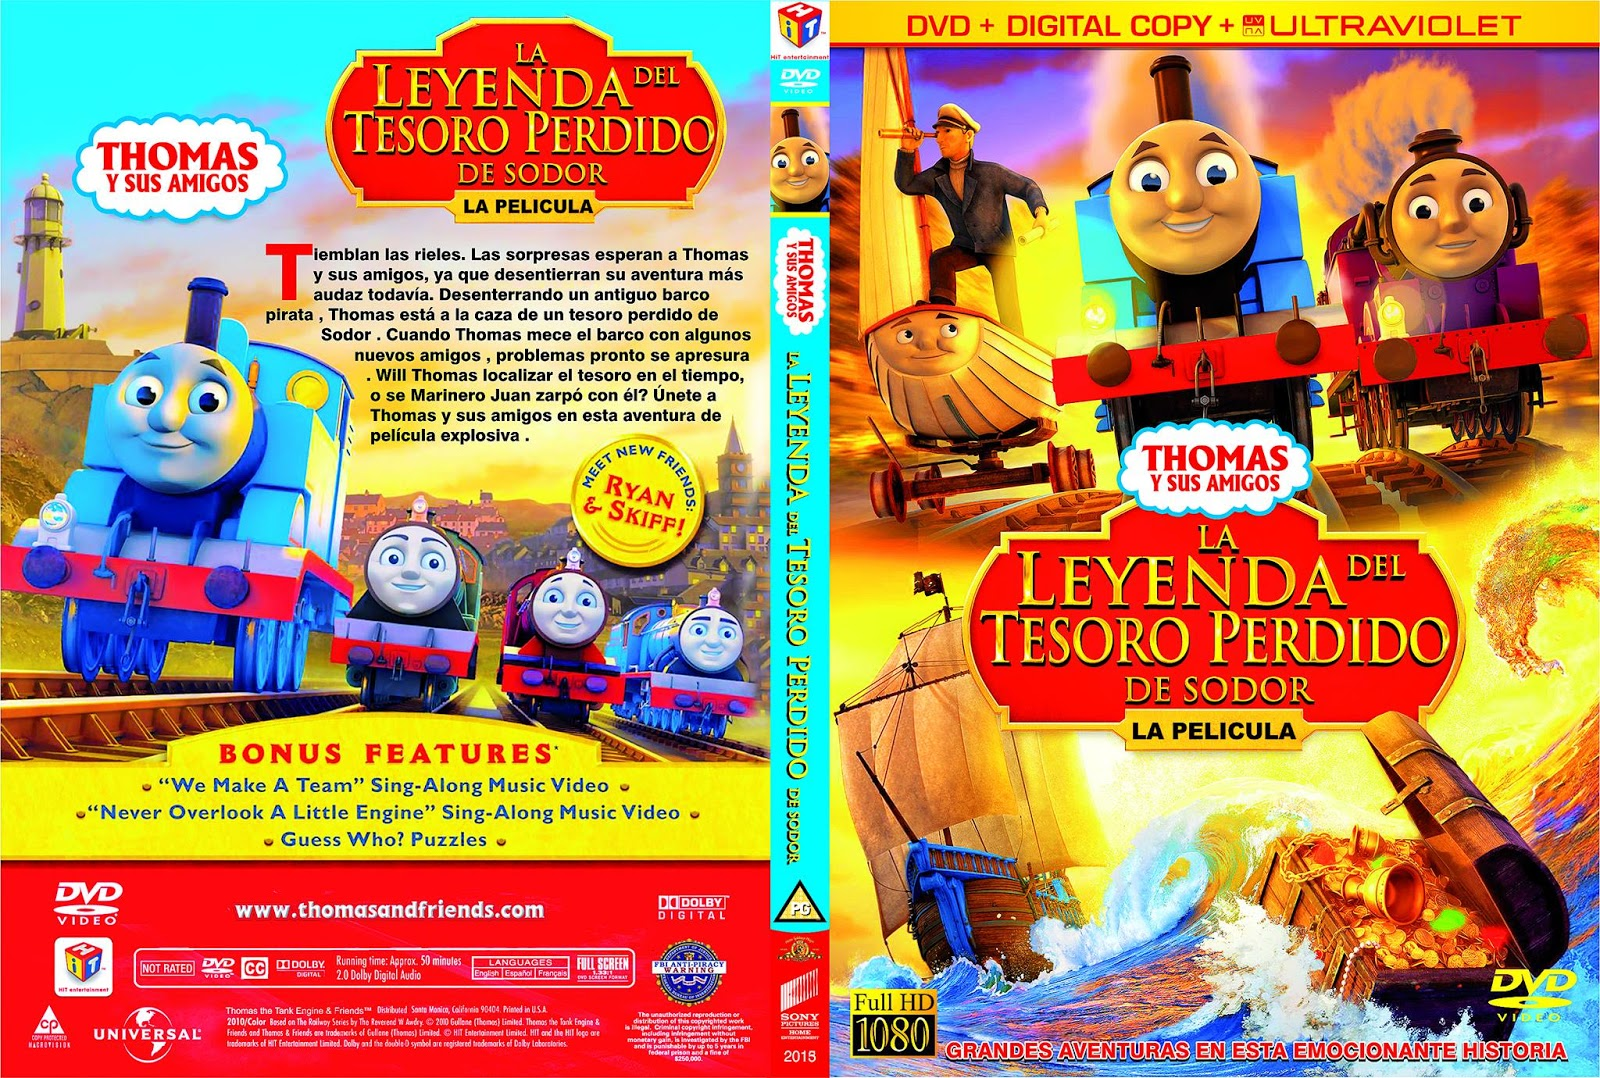 Thomas e Seus Amigos A Lenda do Tesouro Perdido O Filme DVDRip Dublado Thomas  26 Friends Sodor 27s Legend of the Lost Treasure  CoveRdvdGratiS